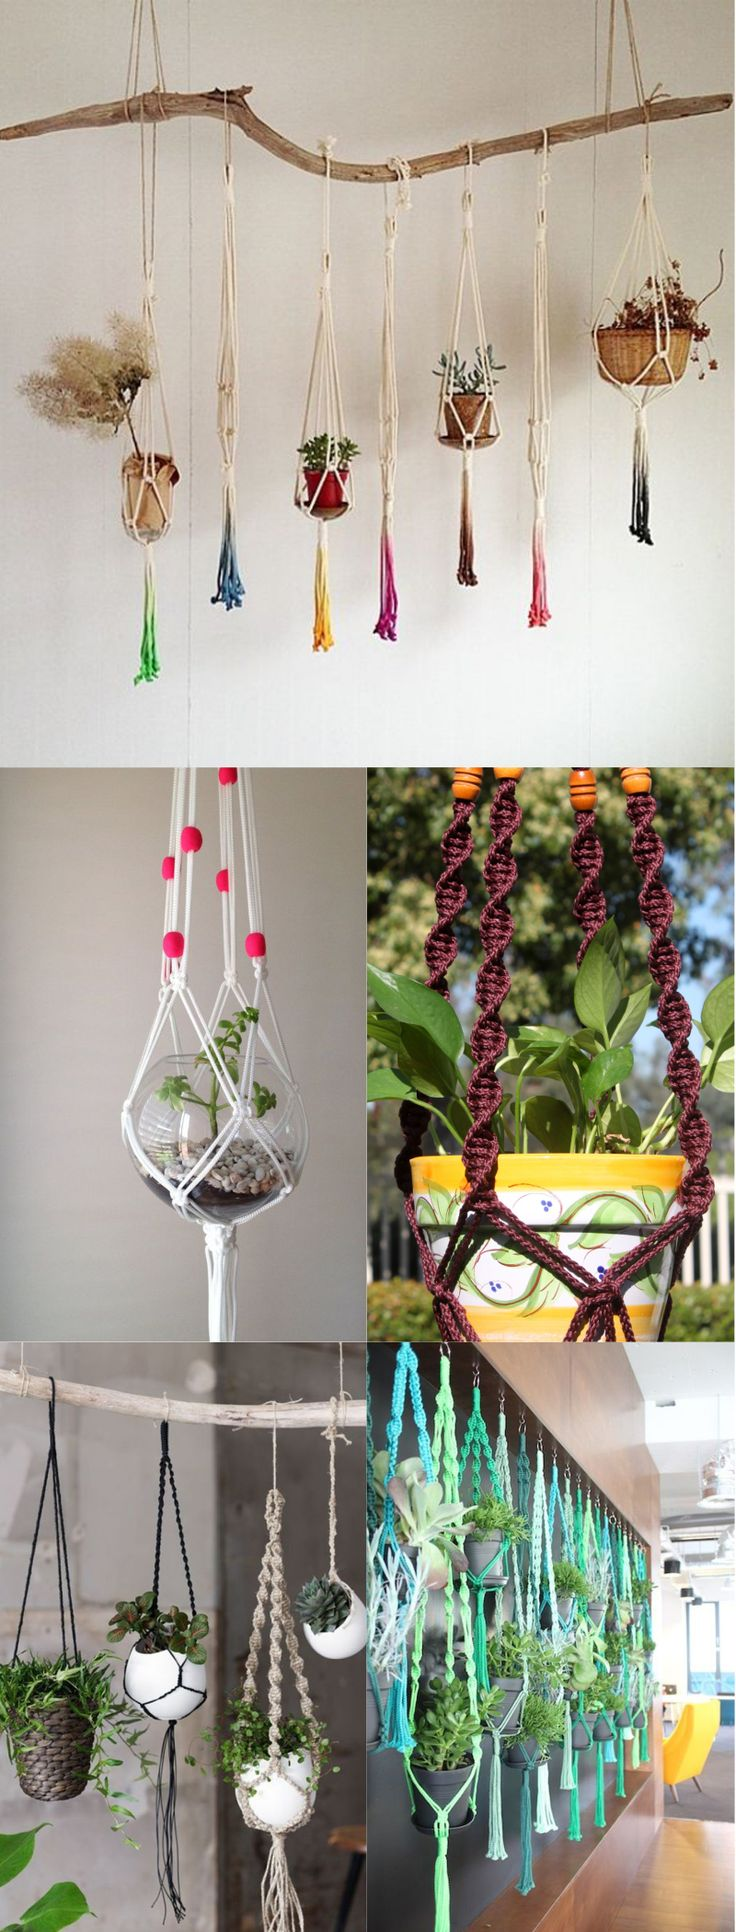 DIY Macramé Plant Hanger Ideas That Will Beautify Your Home